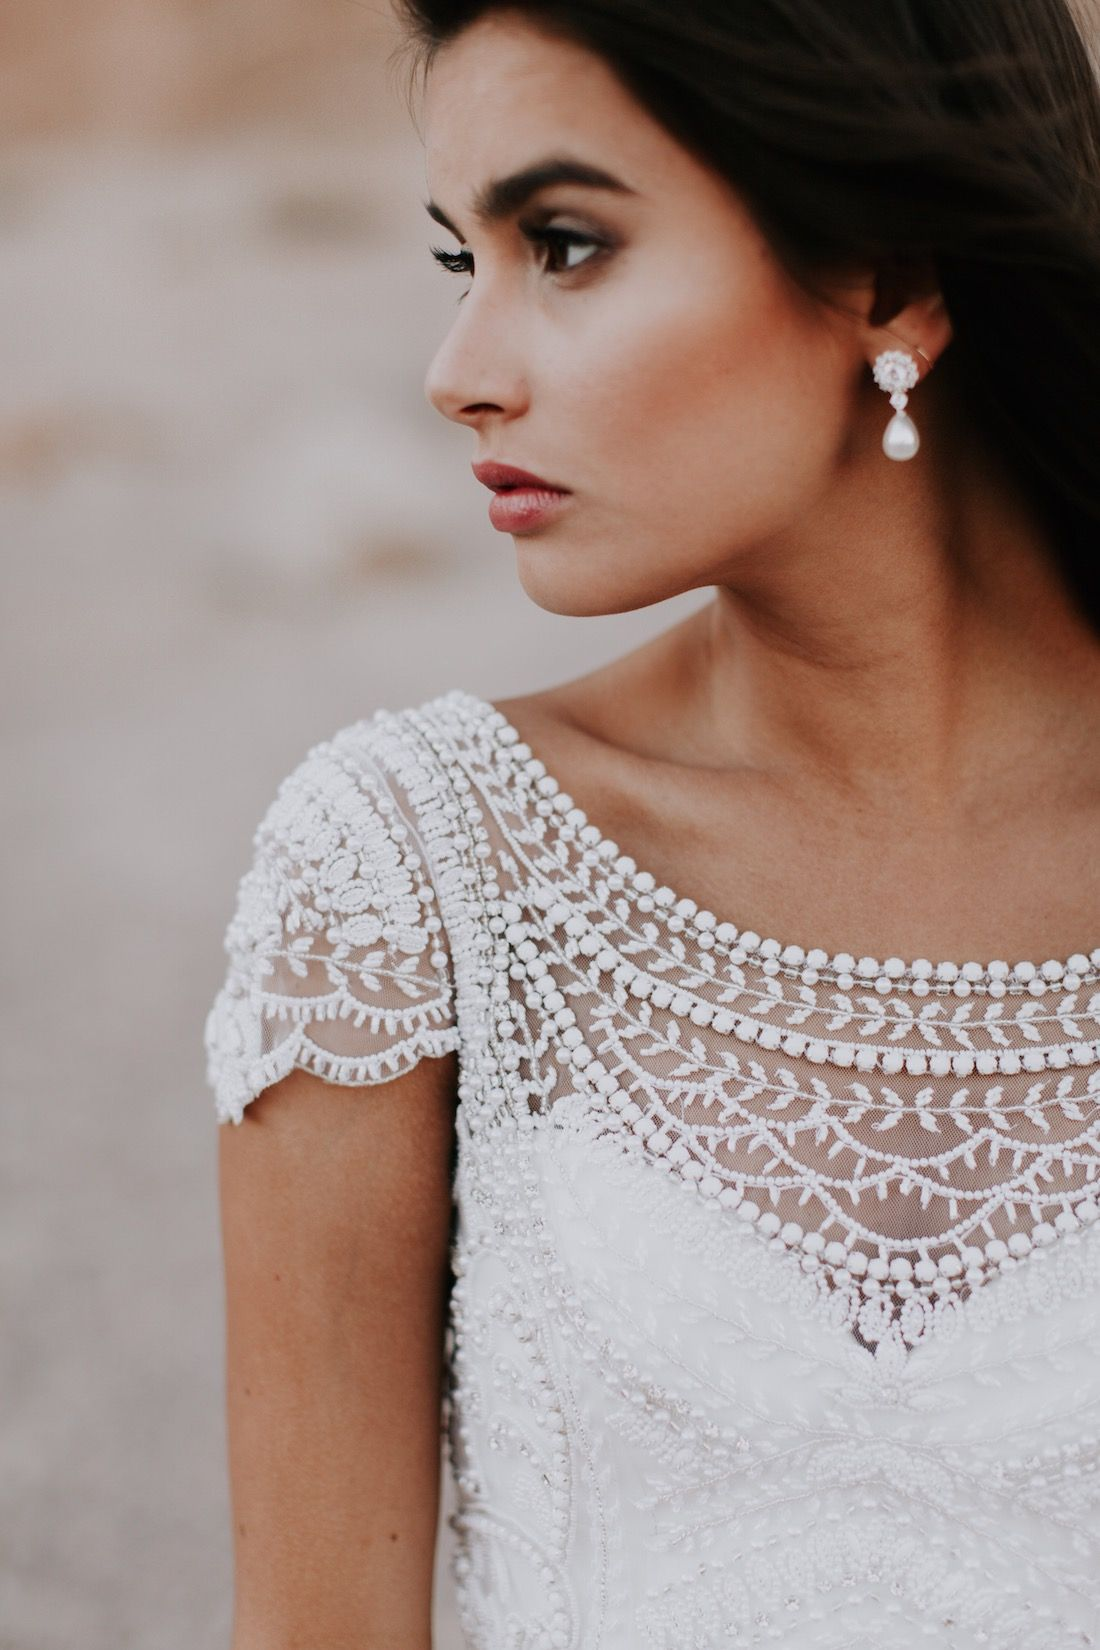 WILD AT HEART | ANNA CAMPBELL VINTAGE INSPIRED HAND BEADED EMBELLISHED WEDDING  DRESS | LOW BACK SHOULDER DETAIL | CAPPED SLEEVE BRIDAL GOWN | STYLED ...